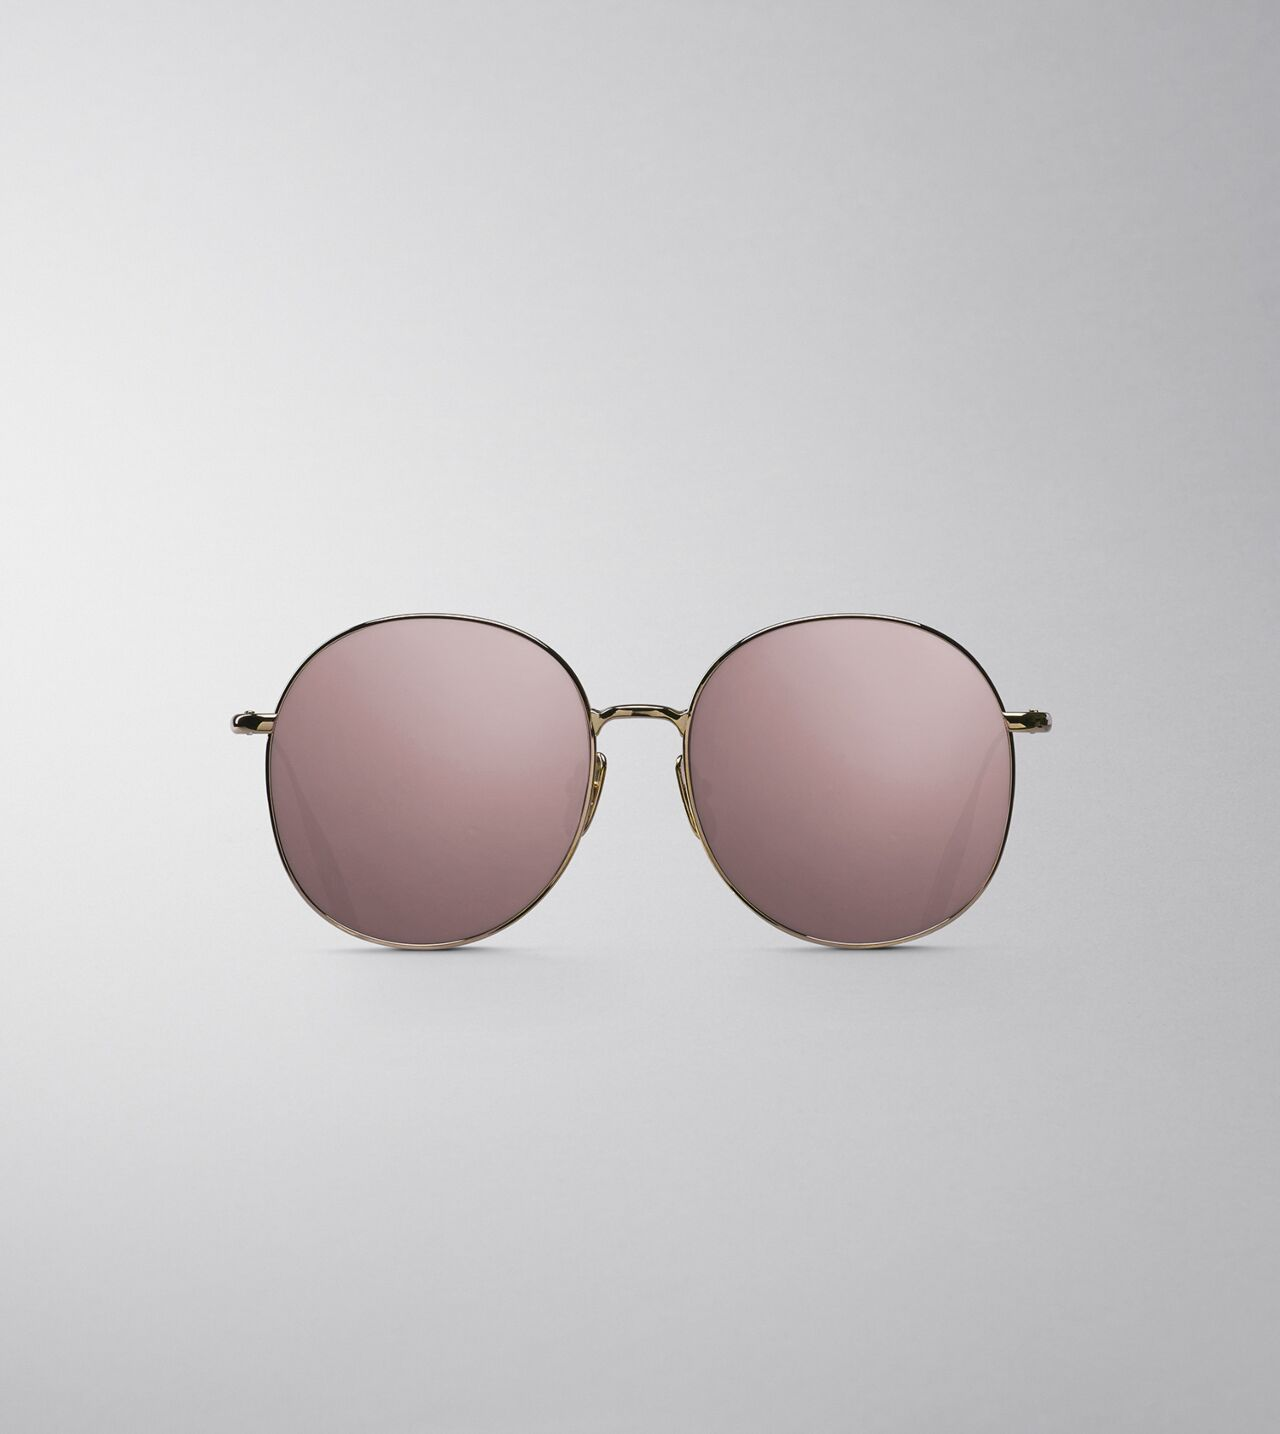 Picture of Byredo The Bohemian in Gold copper mirror